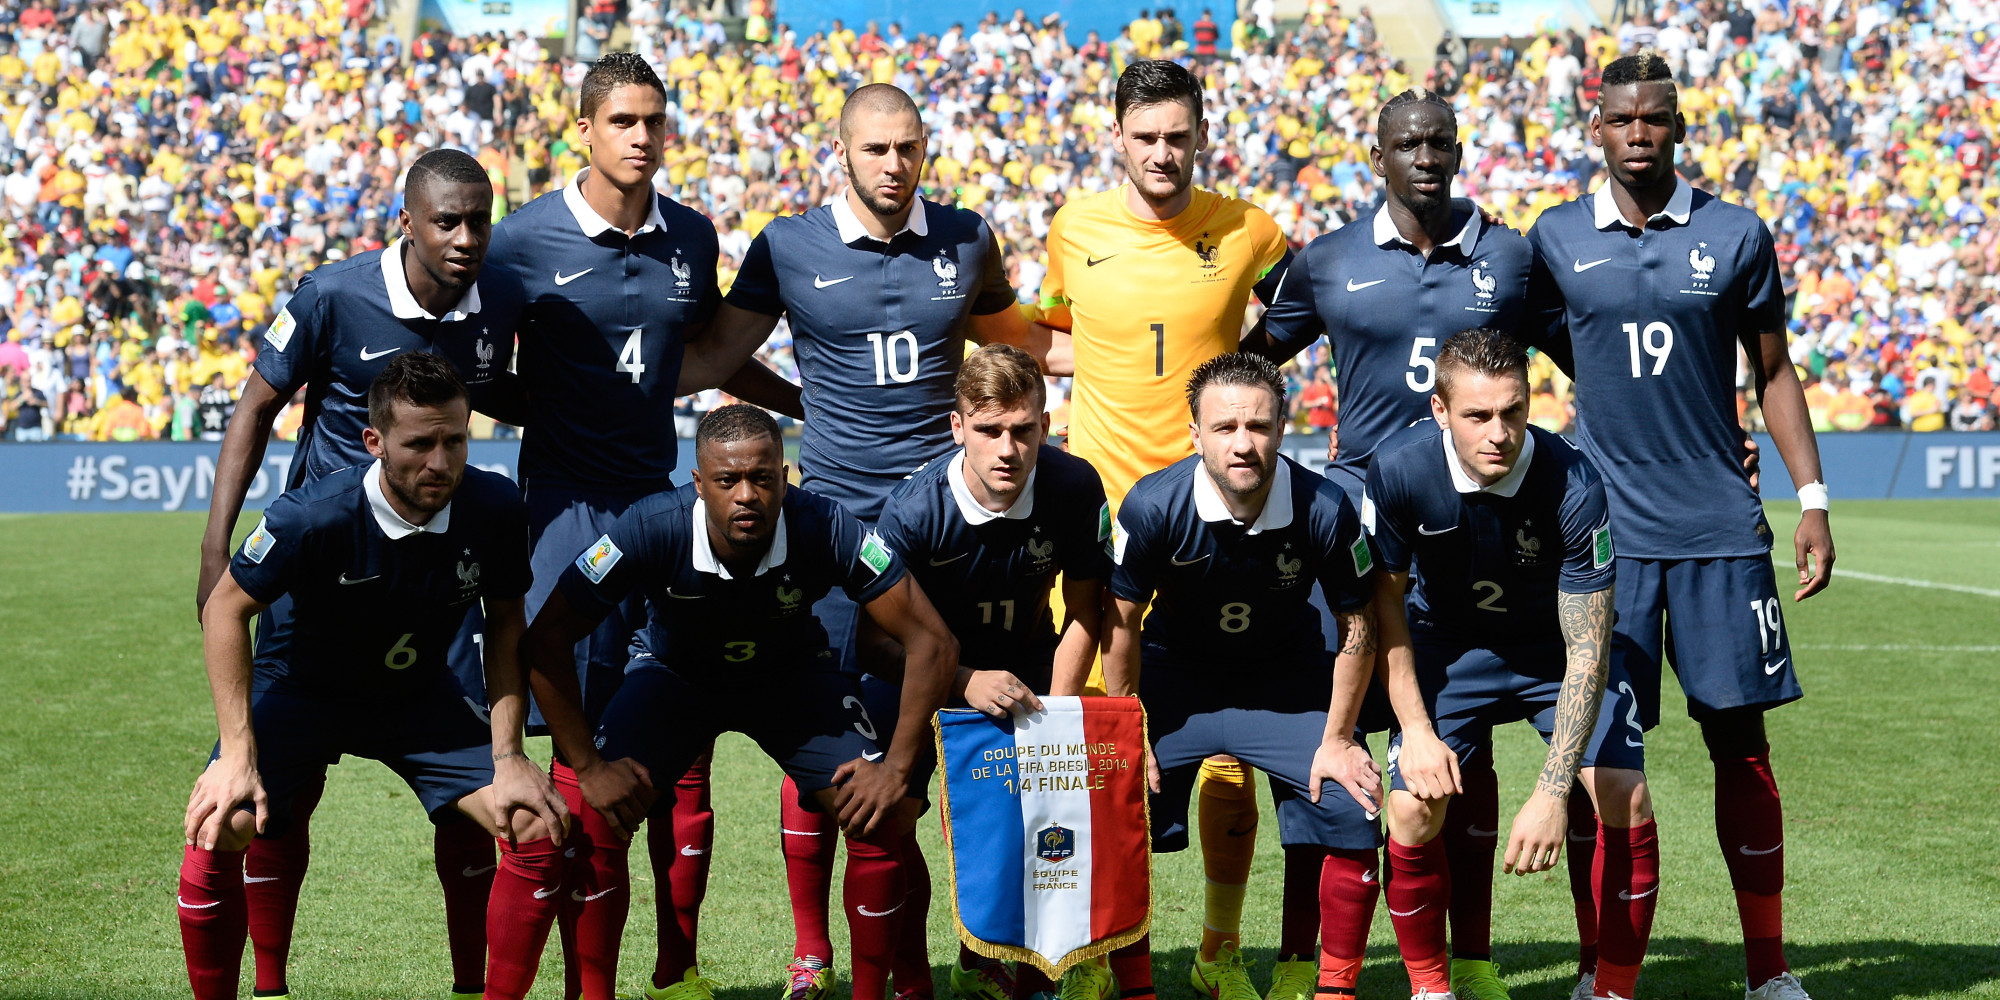 Coupe du monde 2014 malgr l 39 limination face l 39 allemagne l 39 quipe de france a un bel avenir - Coupe de france 2014 foot ...